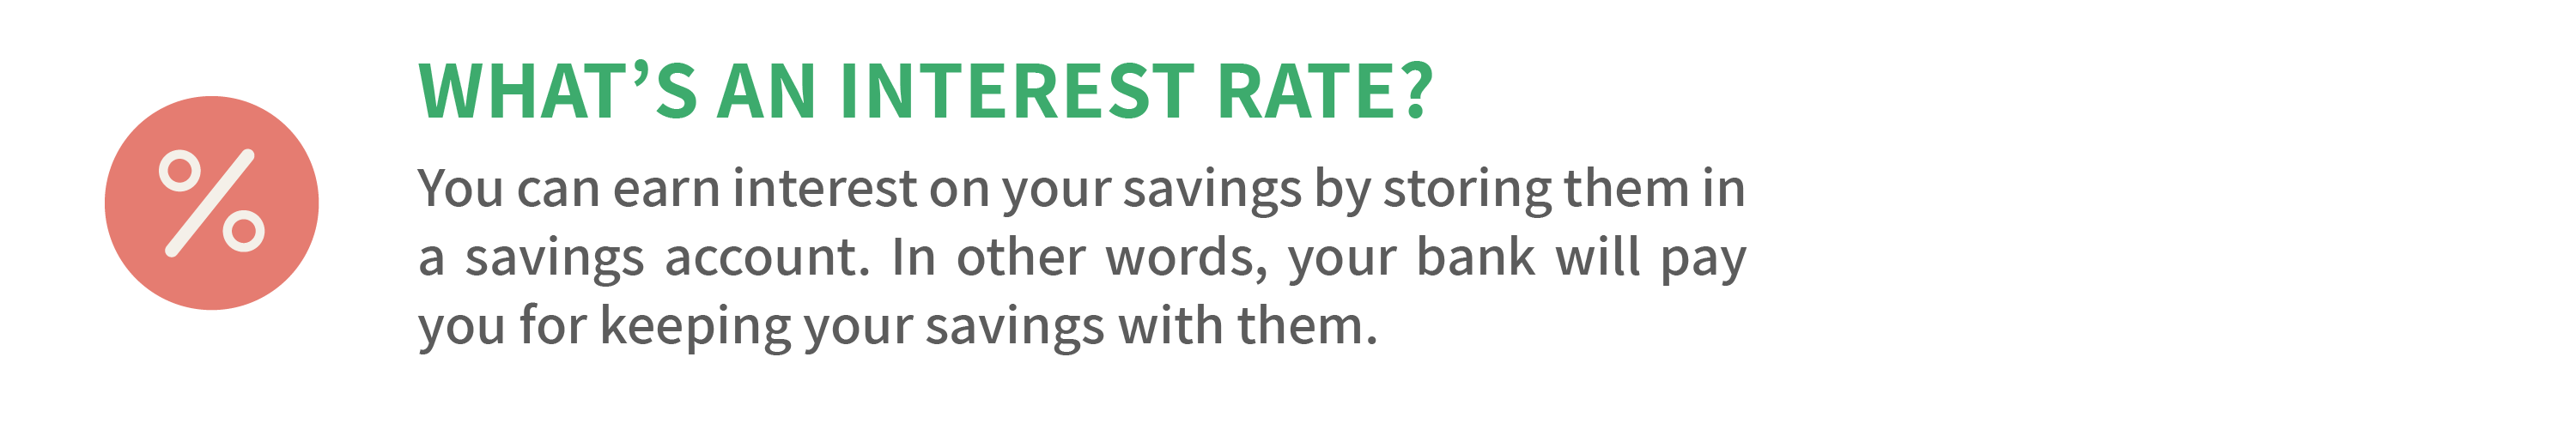 What's an interest rate?